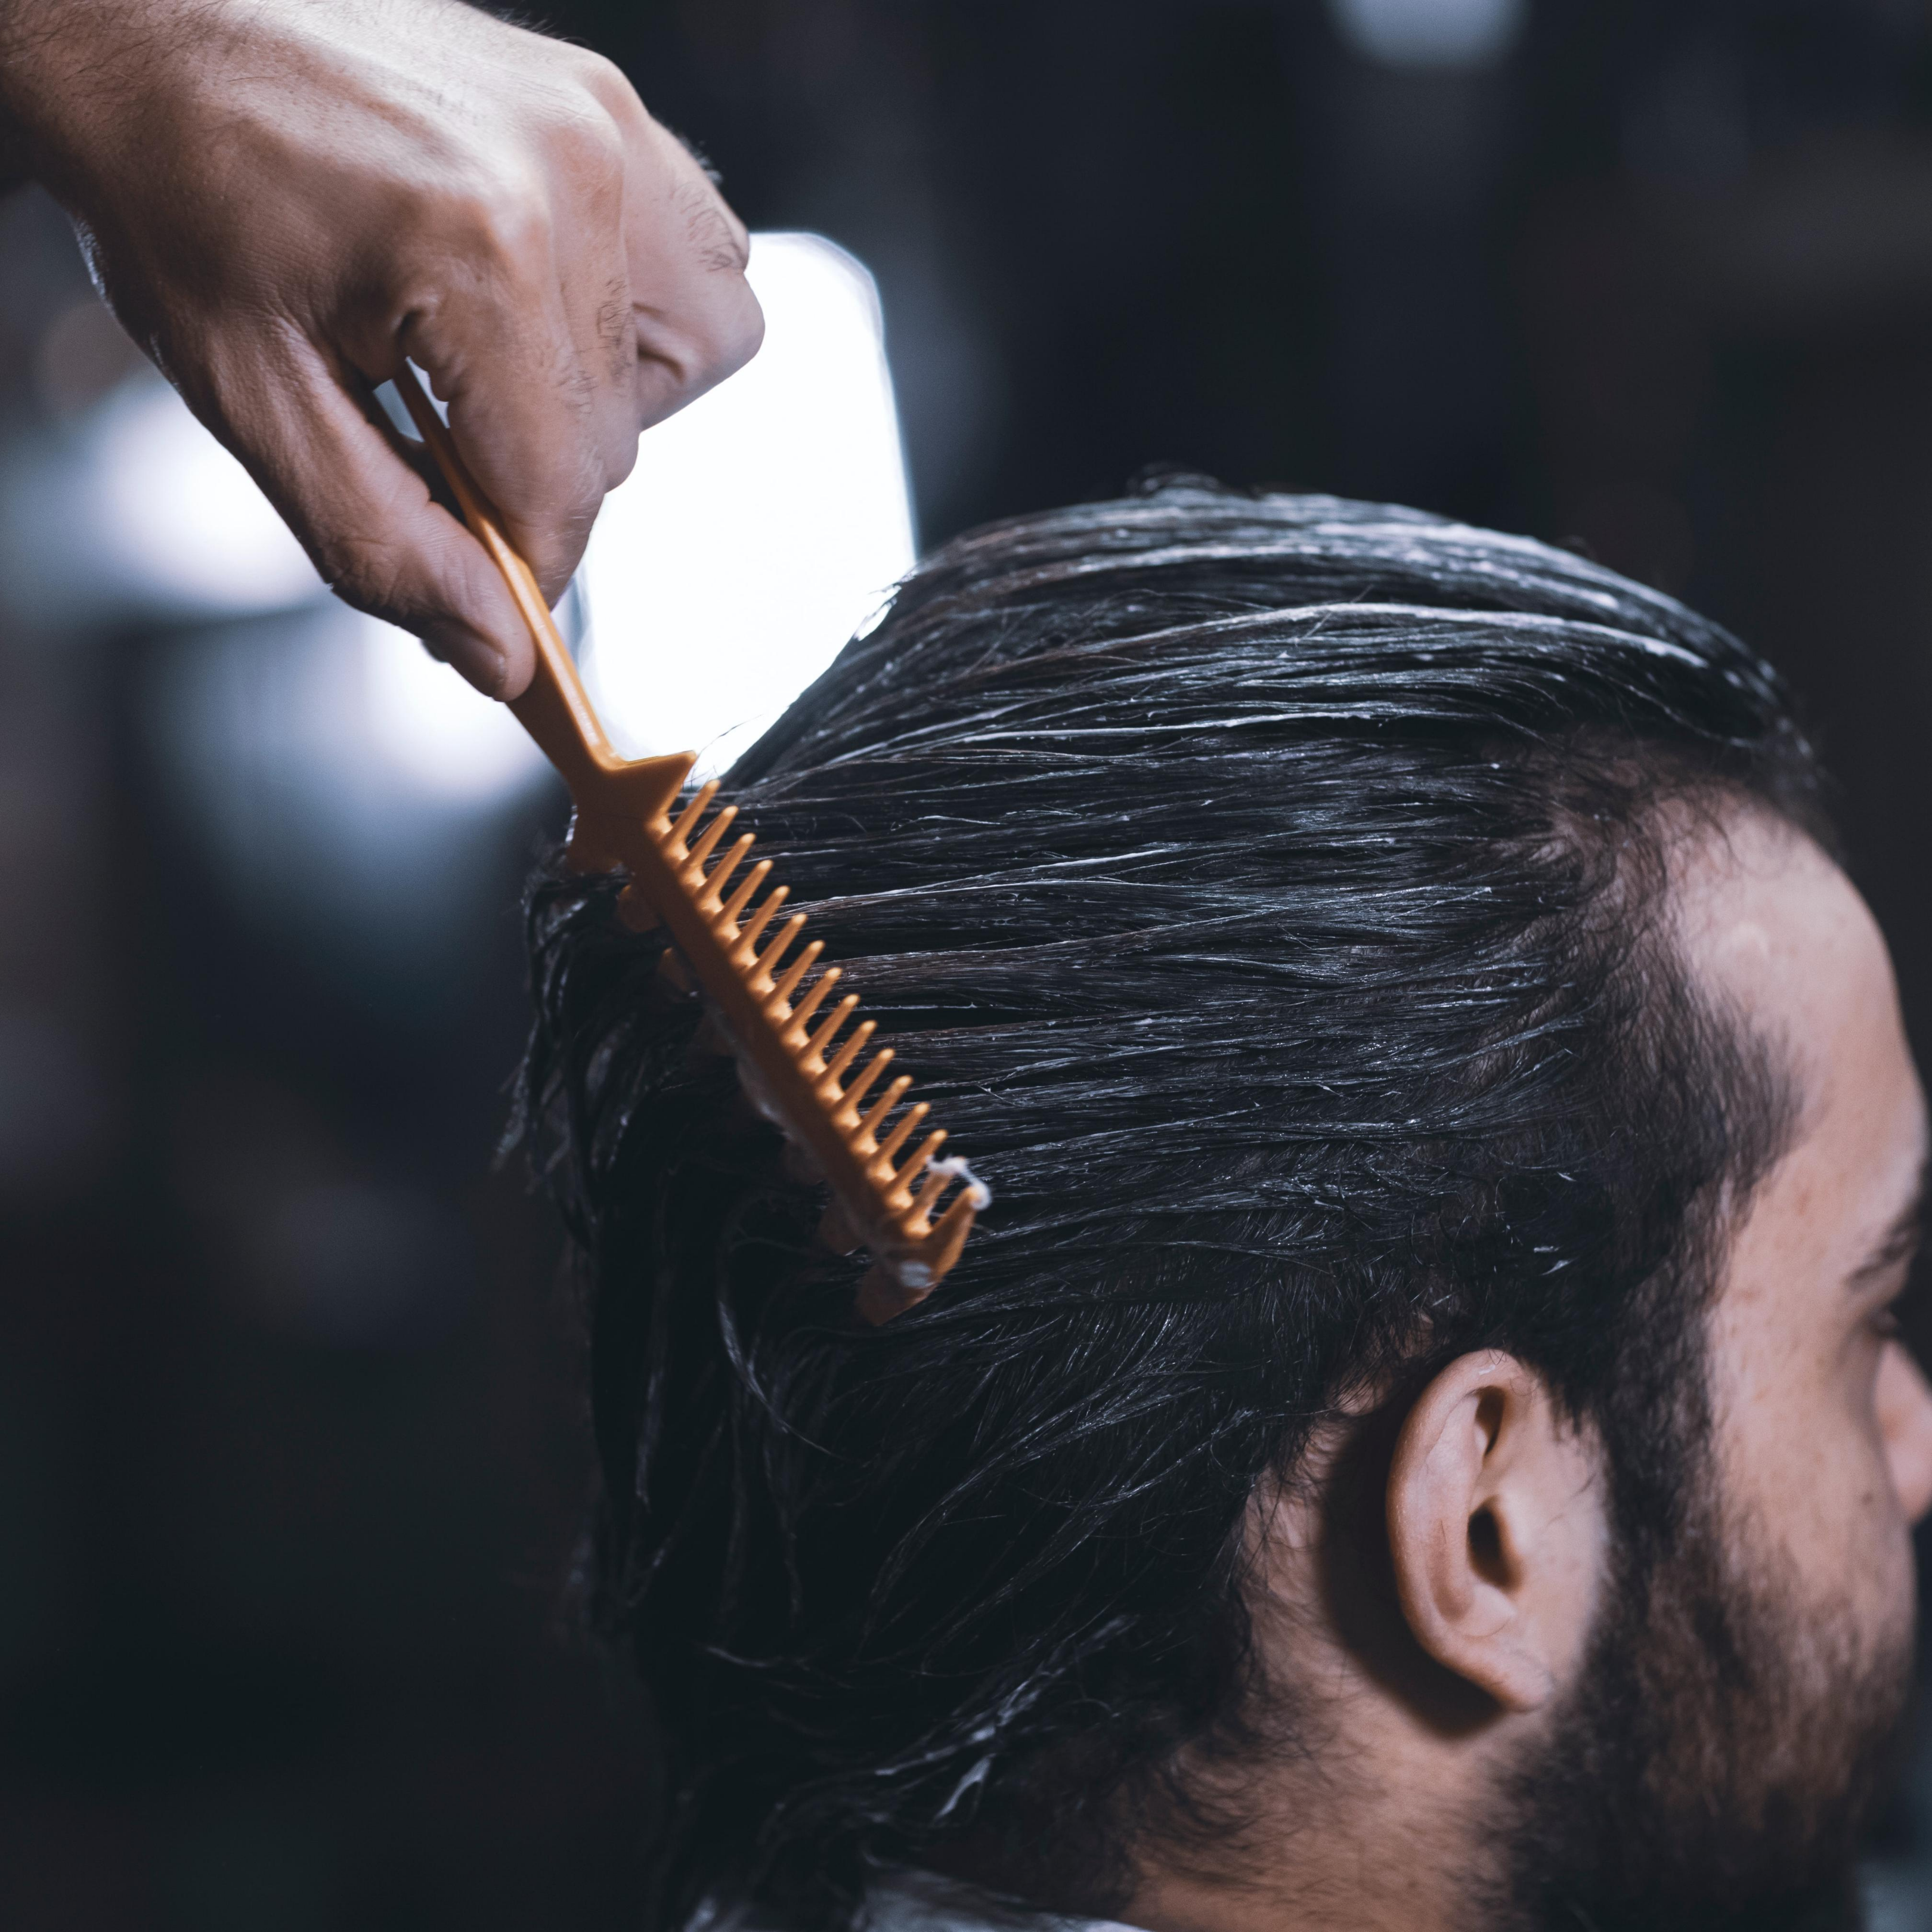 Hair Transplants vs Hair Loss Treatments: Which is the best choice?